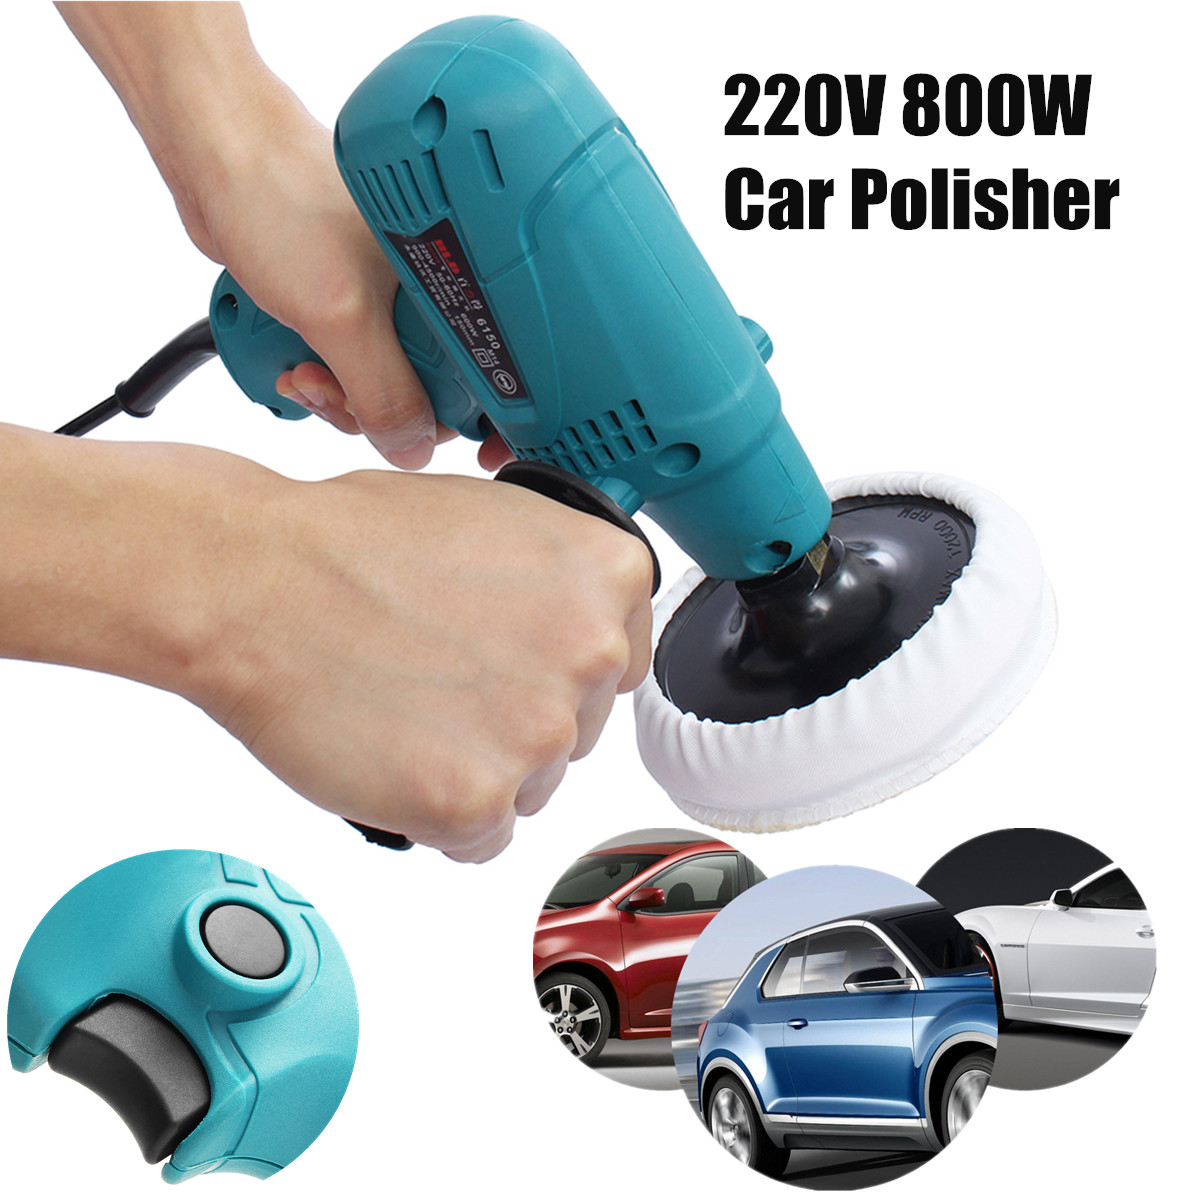 New Car Polisher 220V 800W 3500r/min Speed Adjustable Electric Car Boat Polishing Waxing Sander Buffer цена